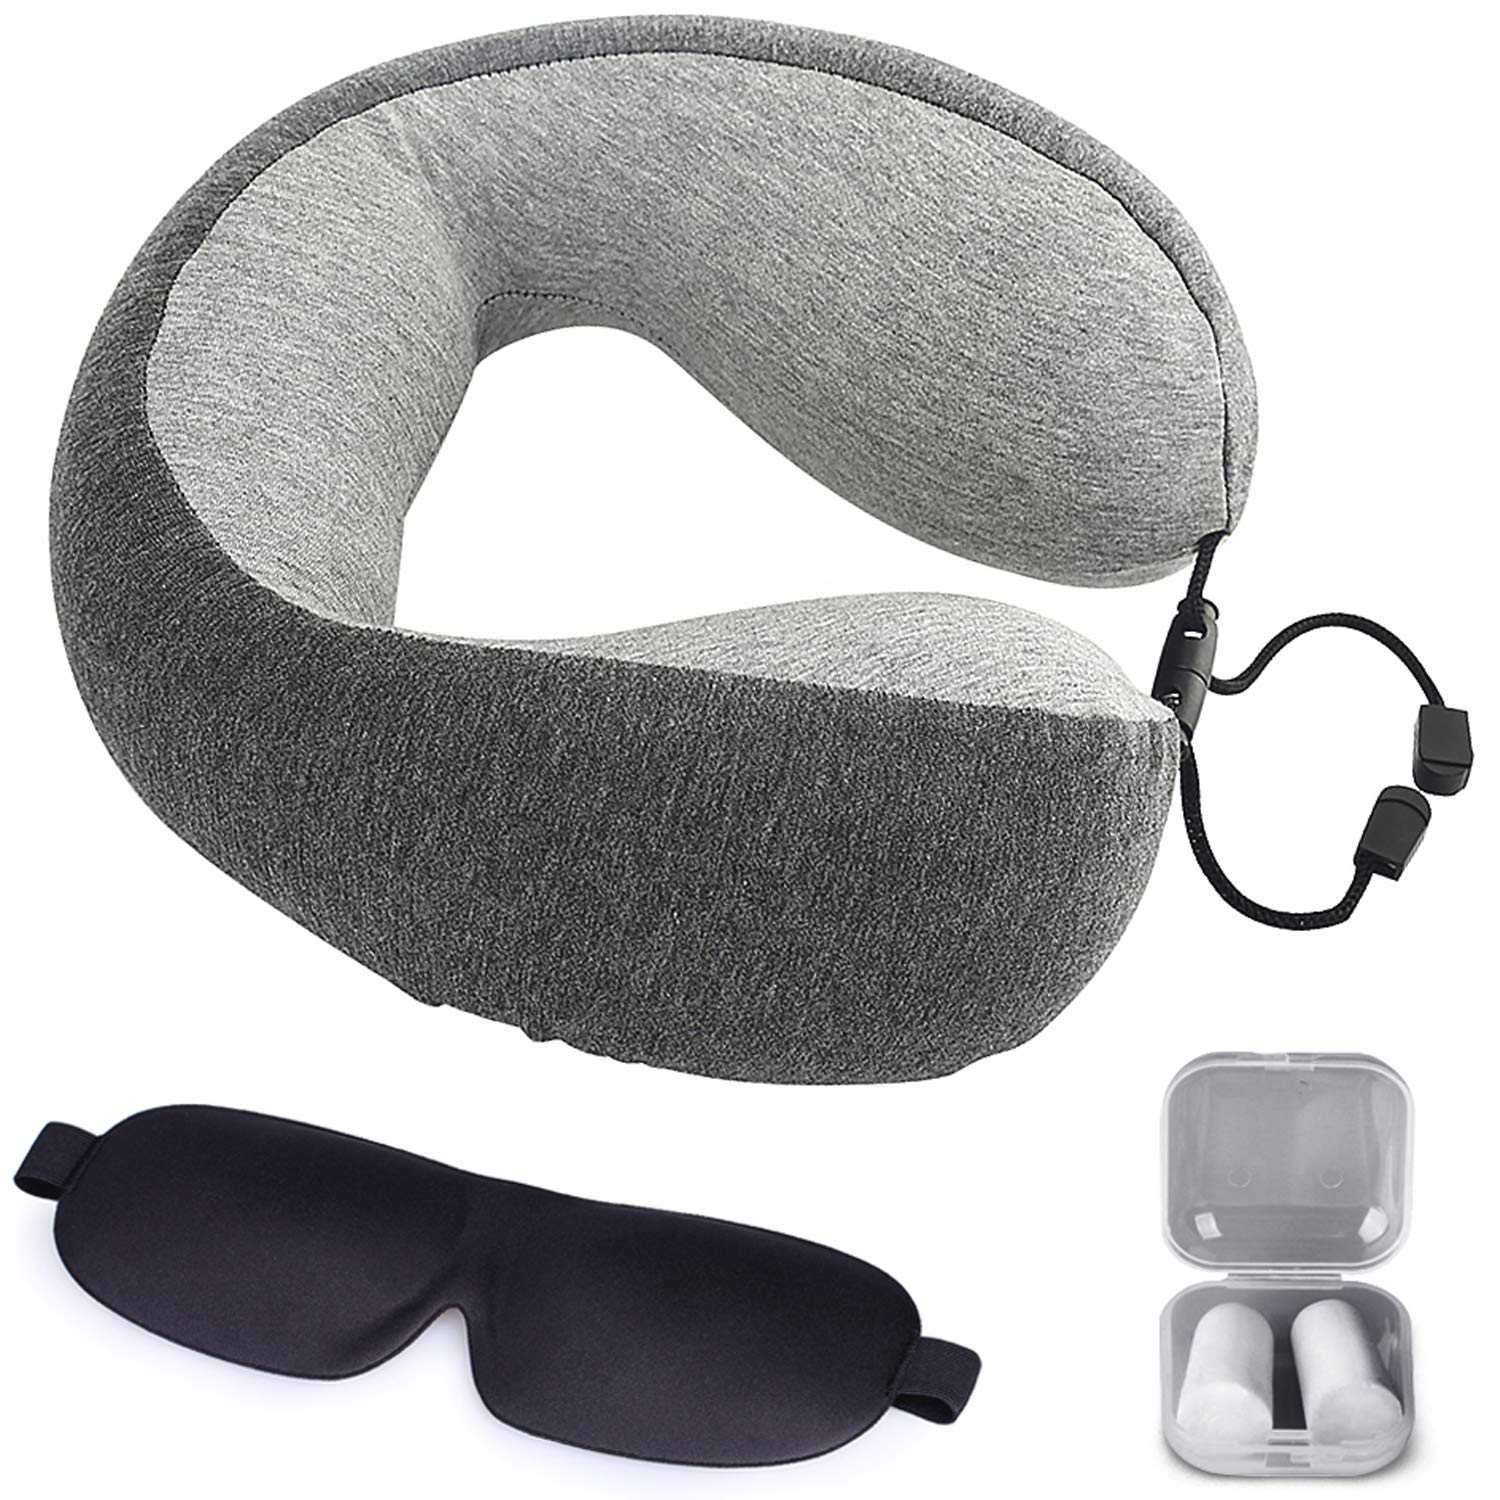 Memory Foam Travel Pillow - Airplane Neck Pillow with Washable Cover, Ear Plugs and Eye Mask for Superior Comfort Breathable Pillow Gray by The Comfort Brand Fab Products